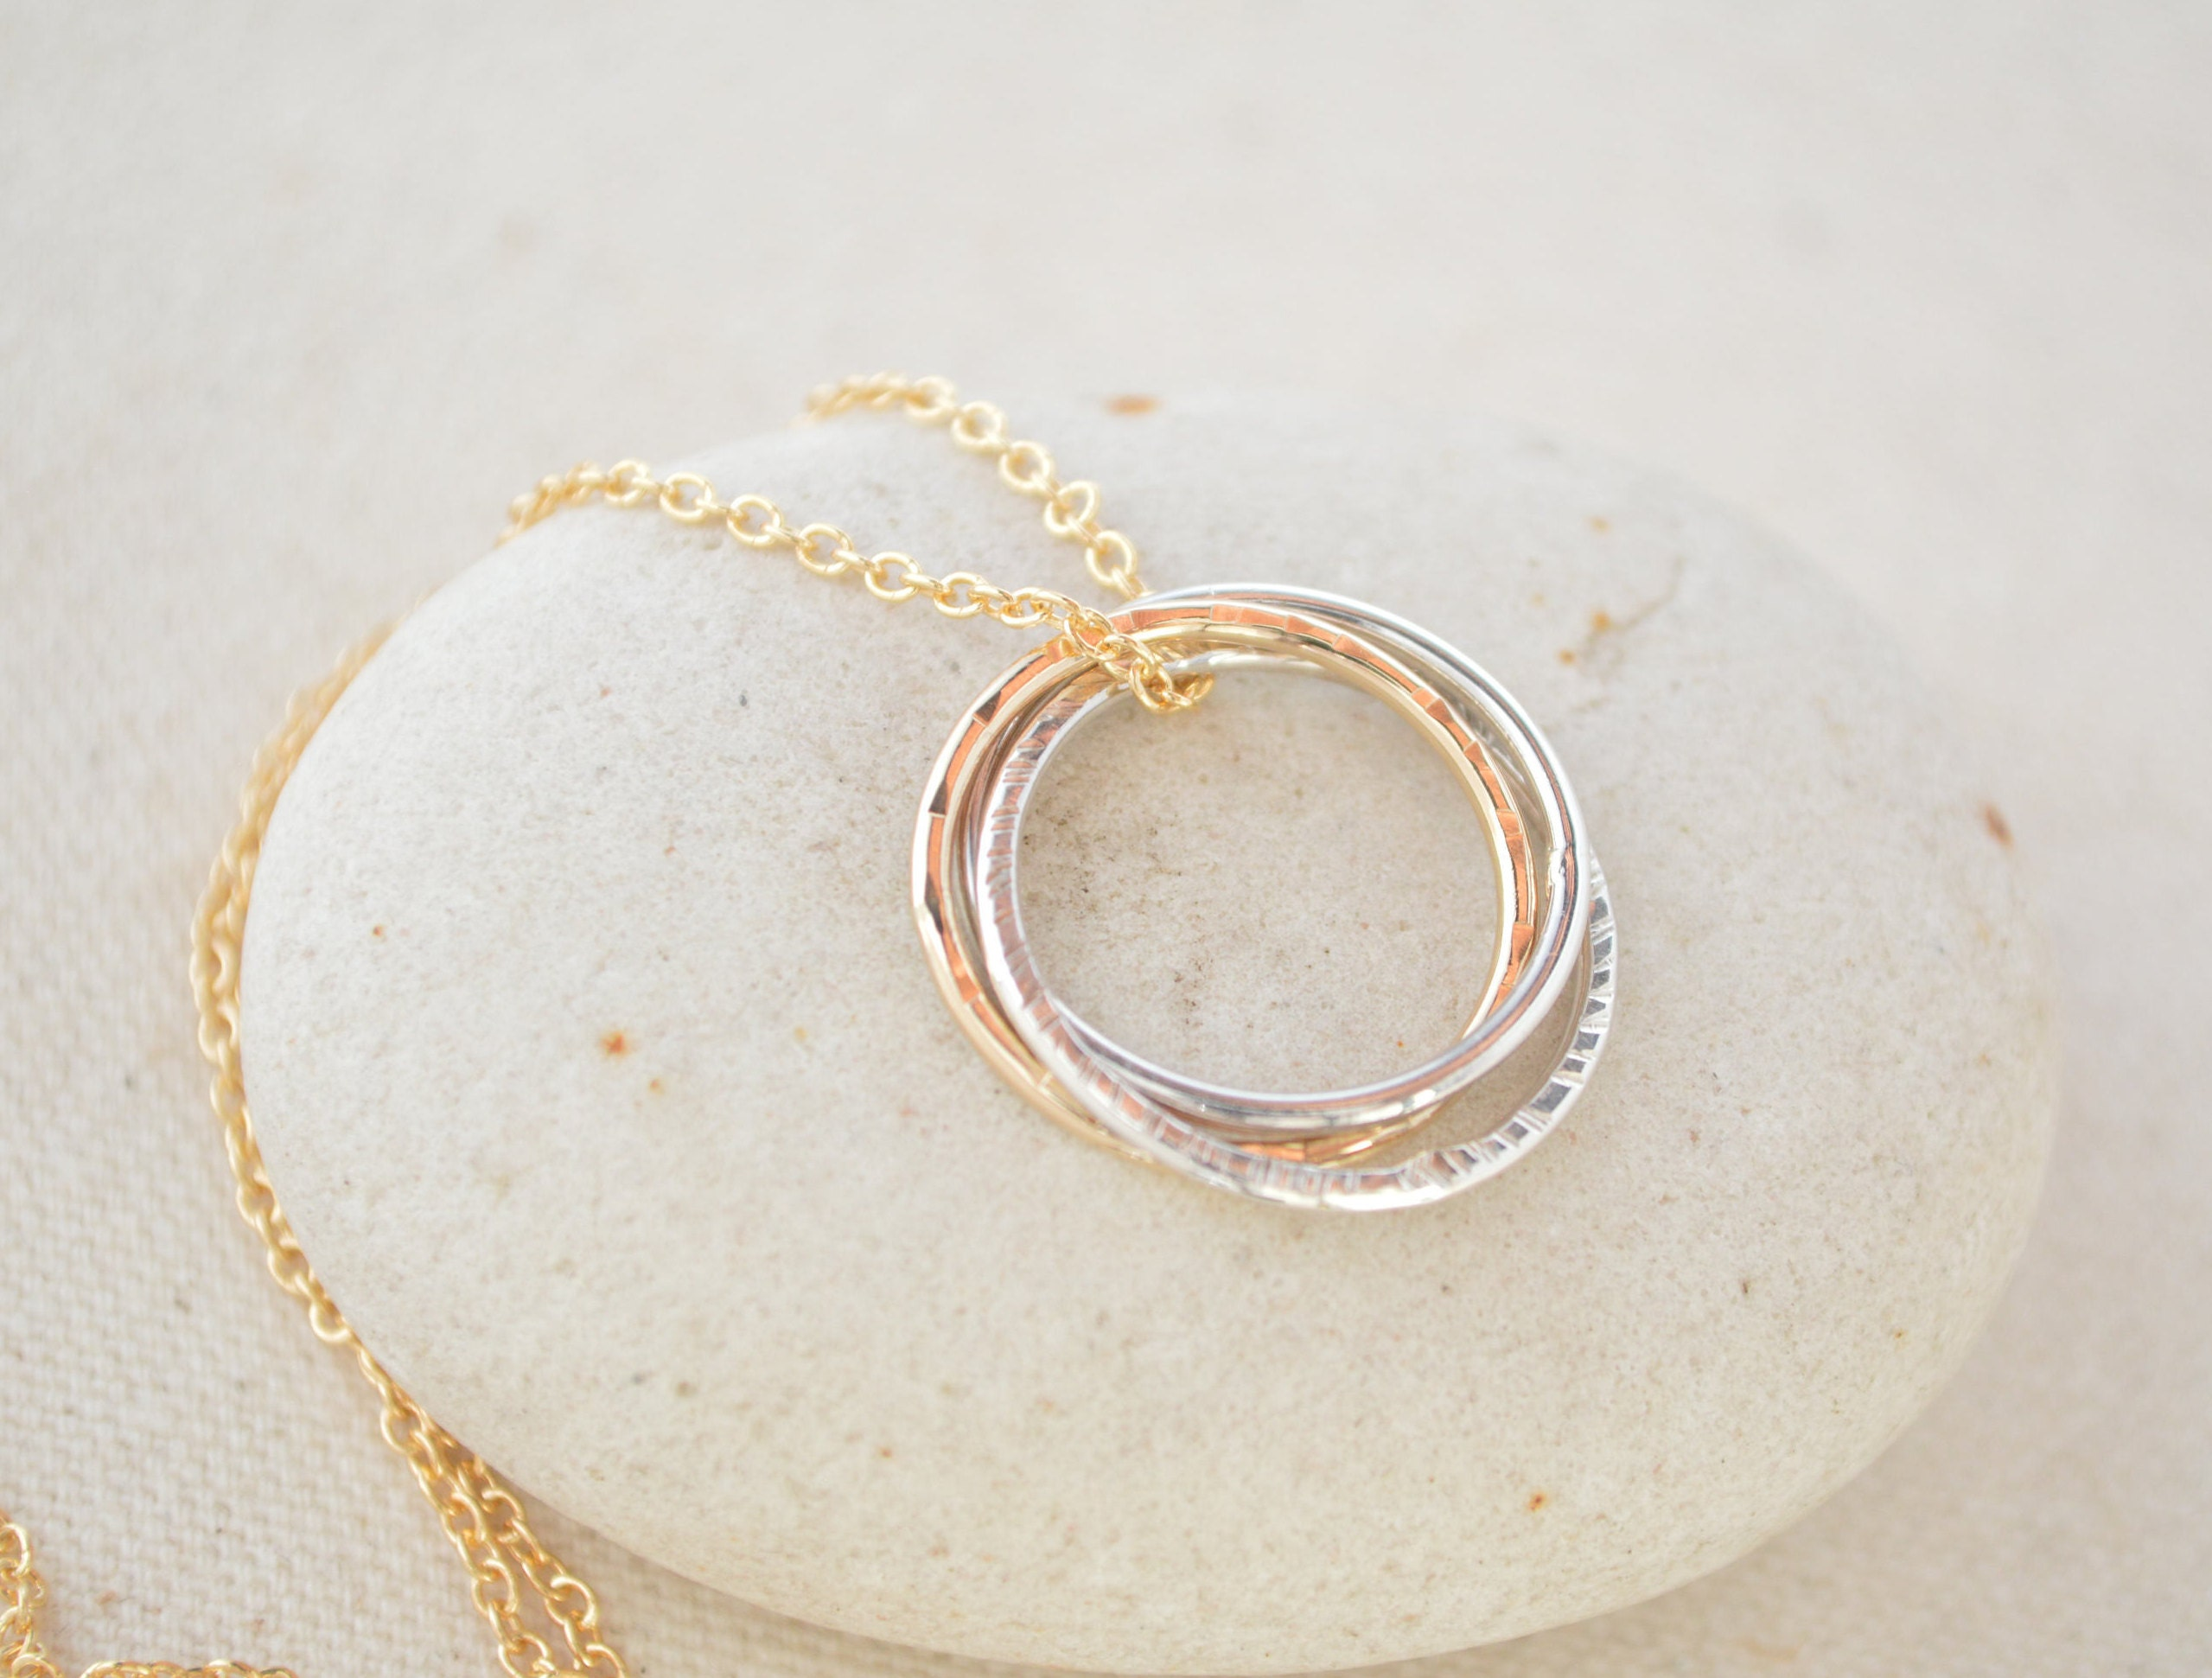 20th Birthday Gift For Her 2nd Anniversary Women Circle Necklace 2 Intertwined Best Friend Sister